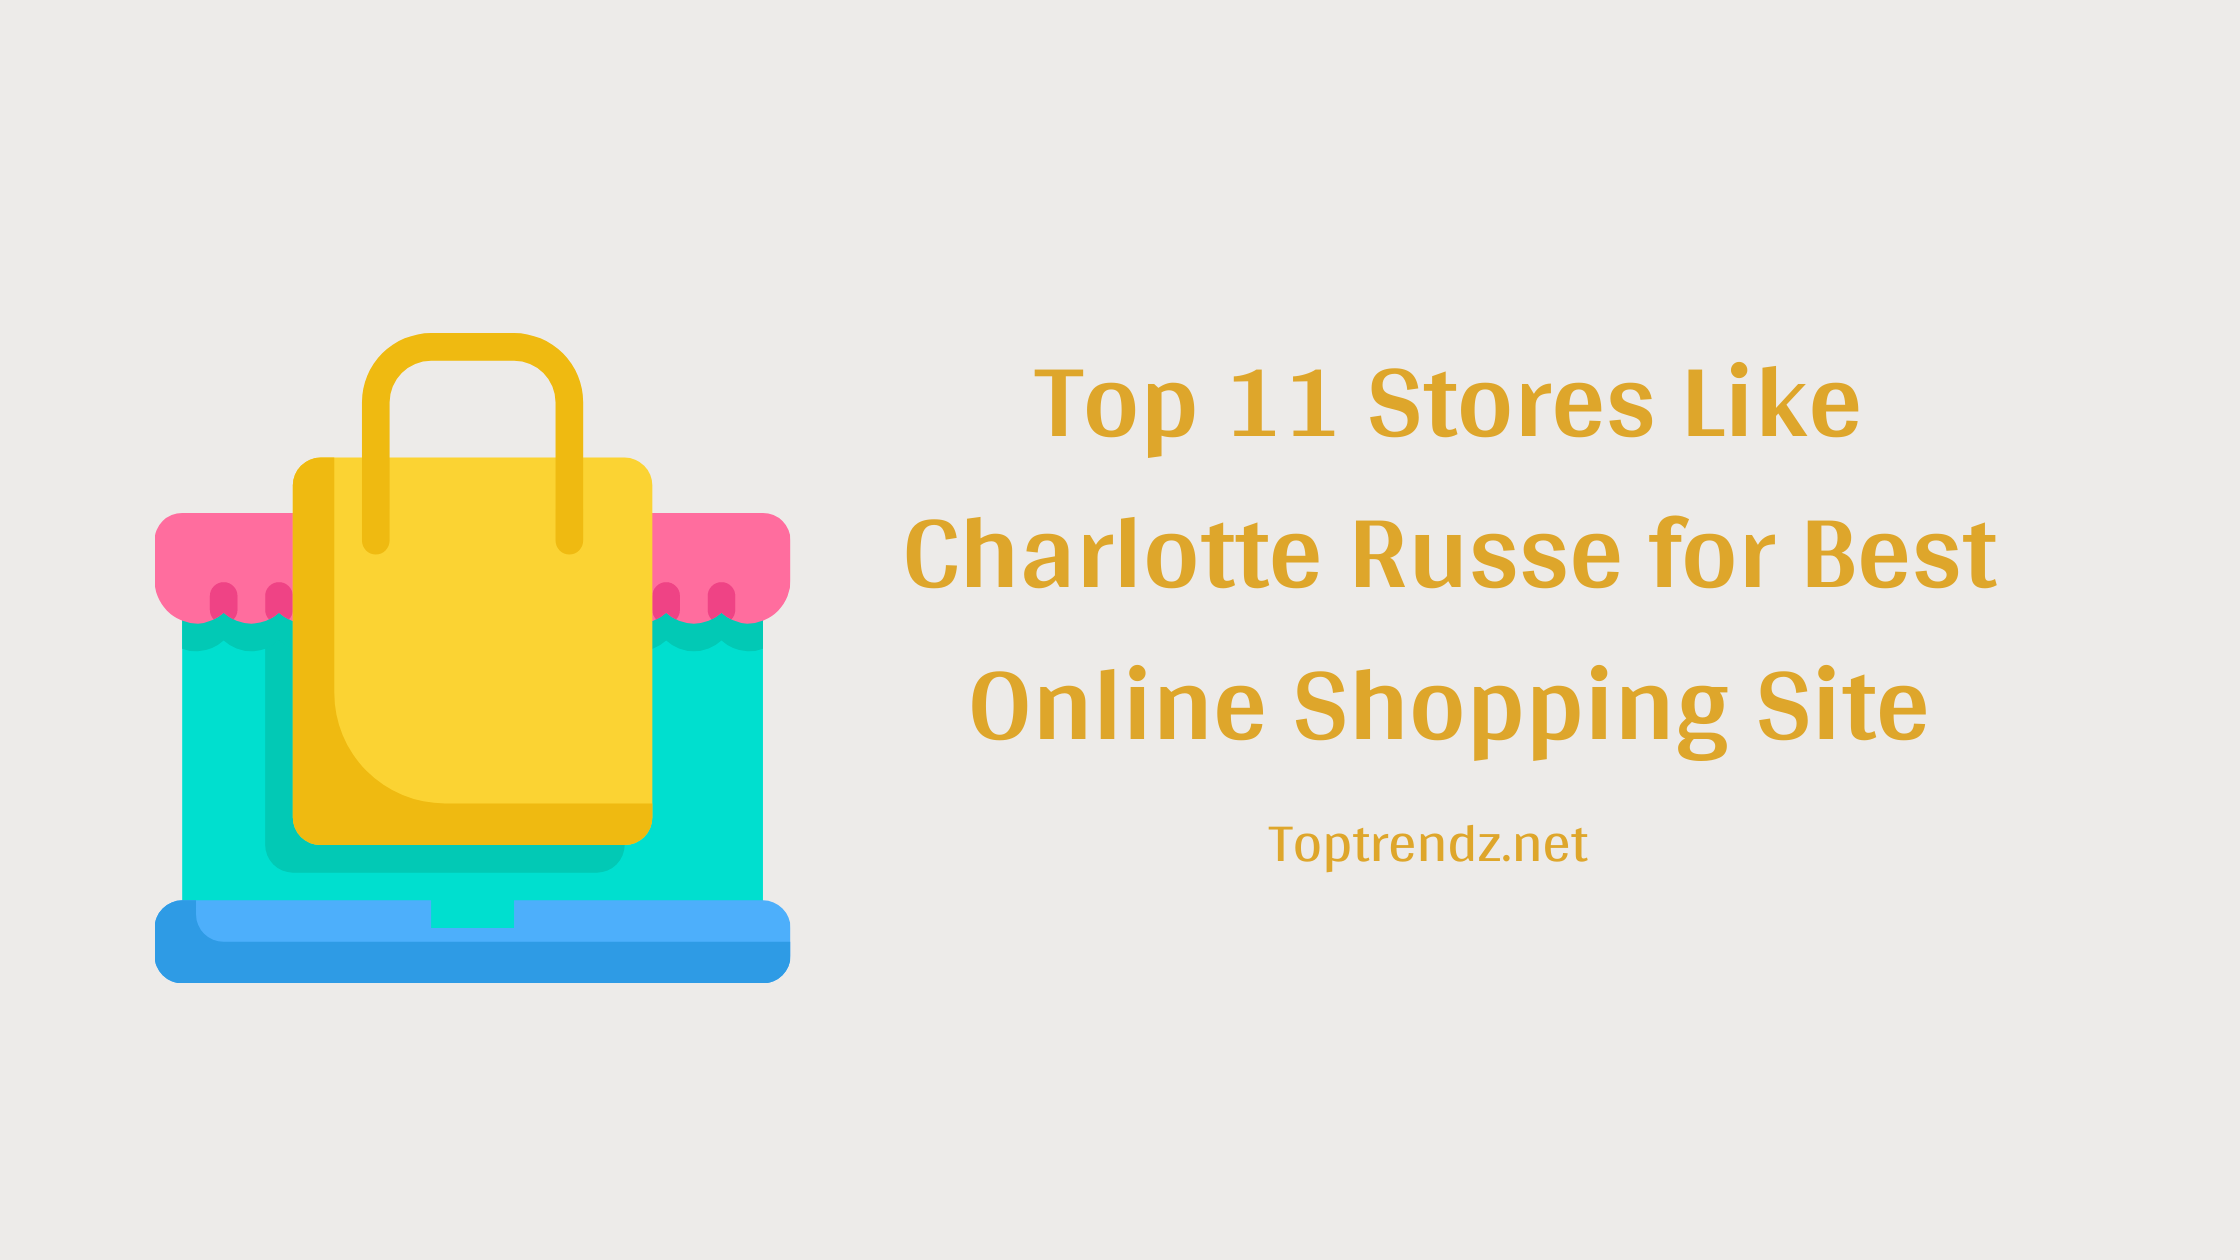 Top 11 Stores Like Charlotte Russe for Online Shopping in 2021